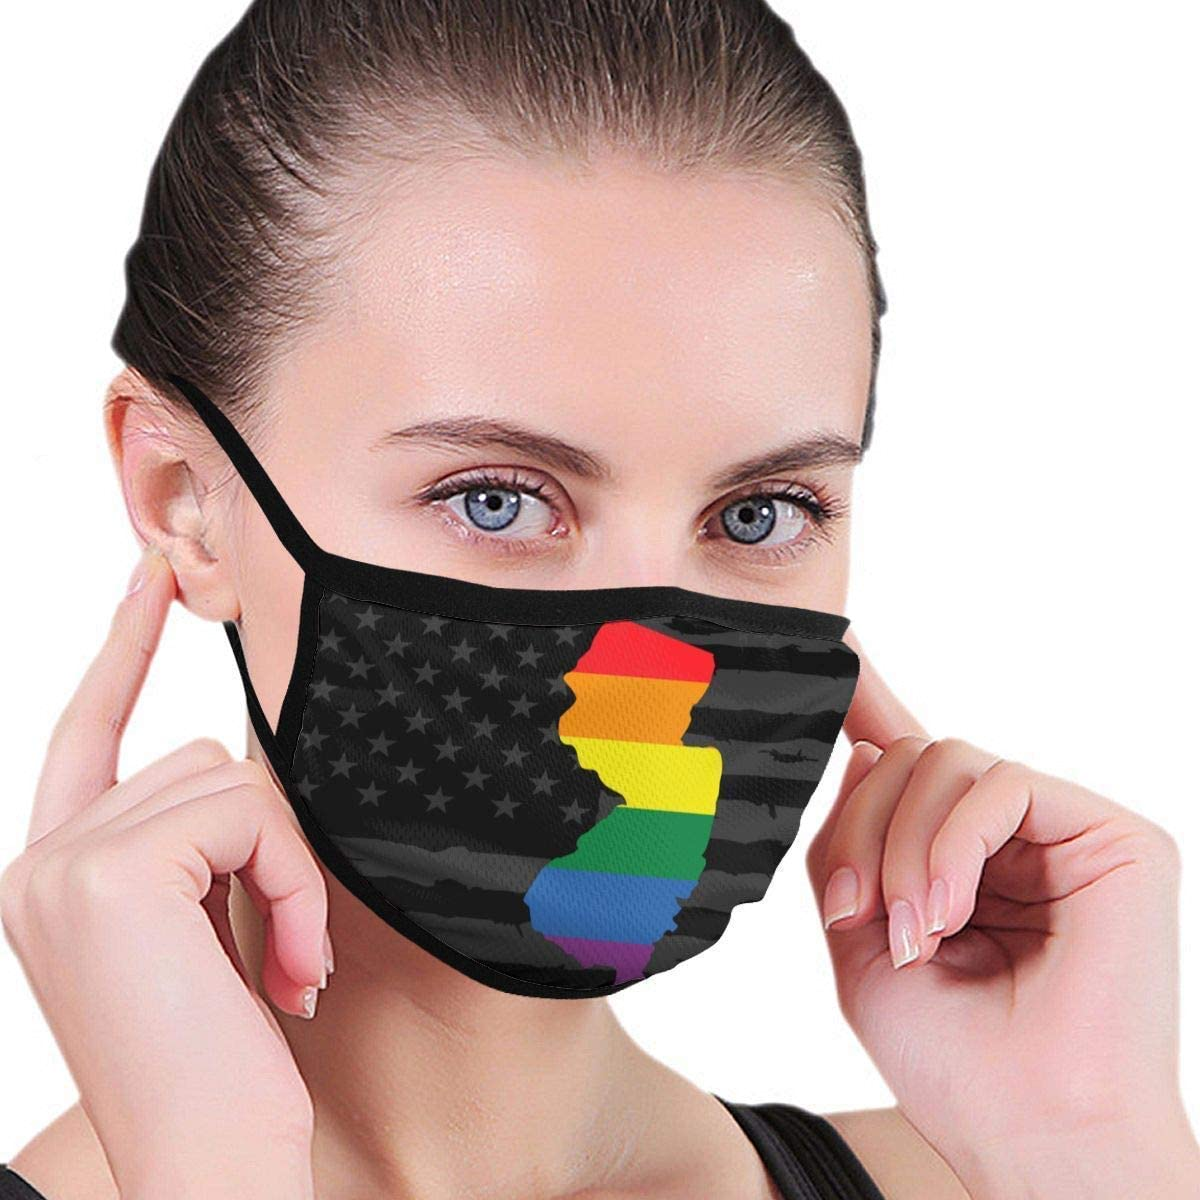 BOKUTT Dust and odor mask Windproof Decorative Covers New Jersey State Pride Reusable Winter Washable Colorful Fashion Outdoor-Washable and reusable